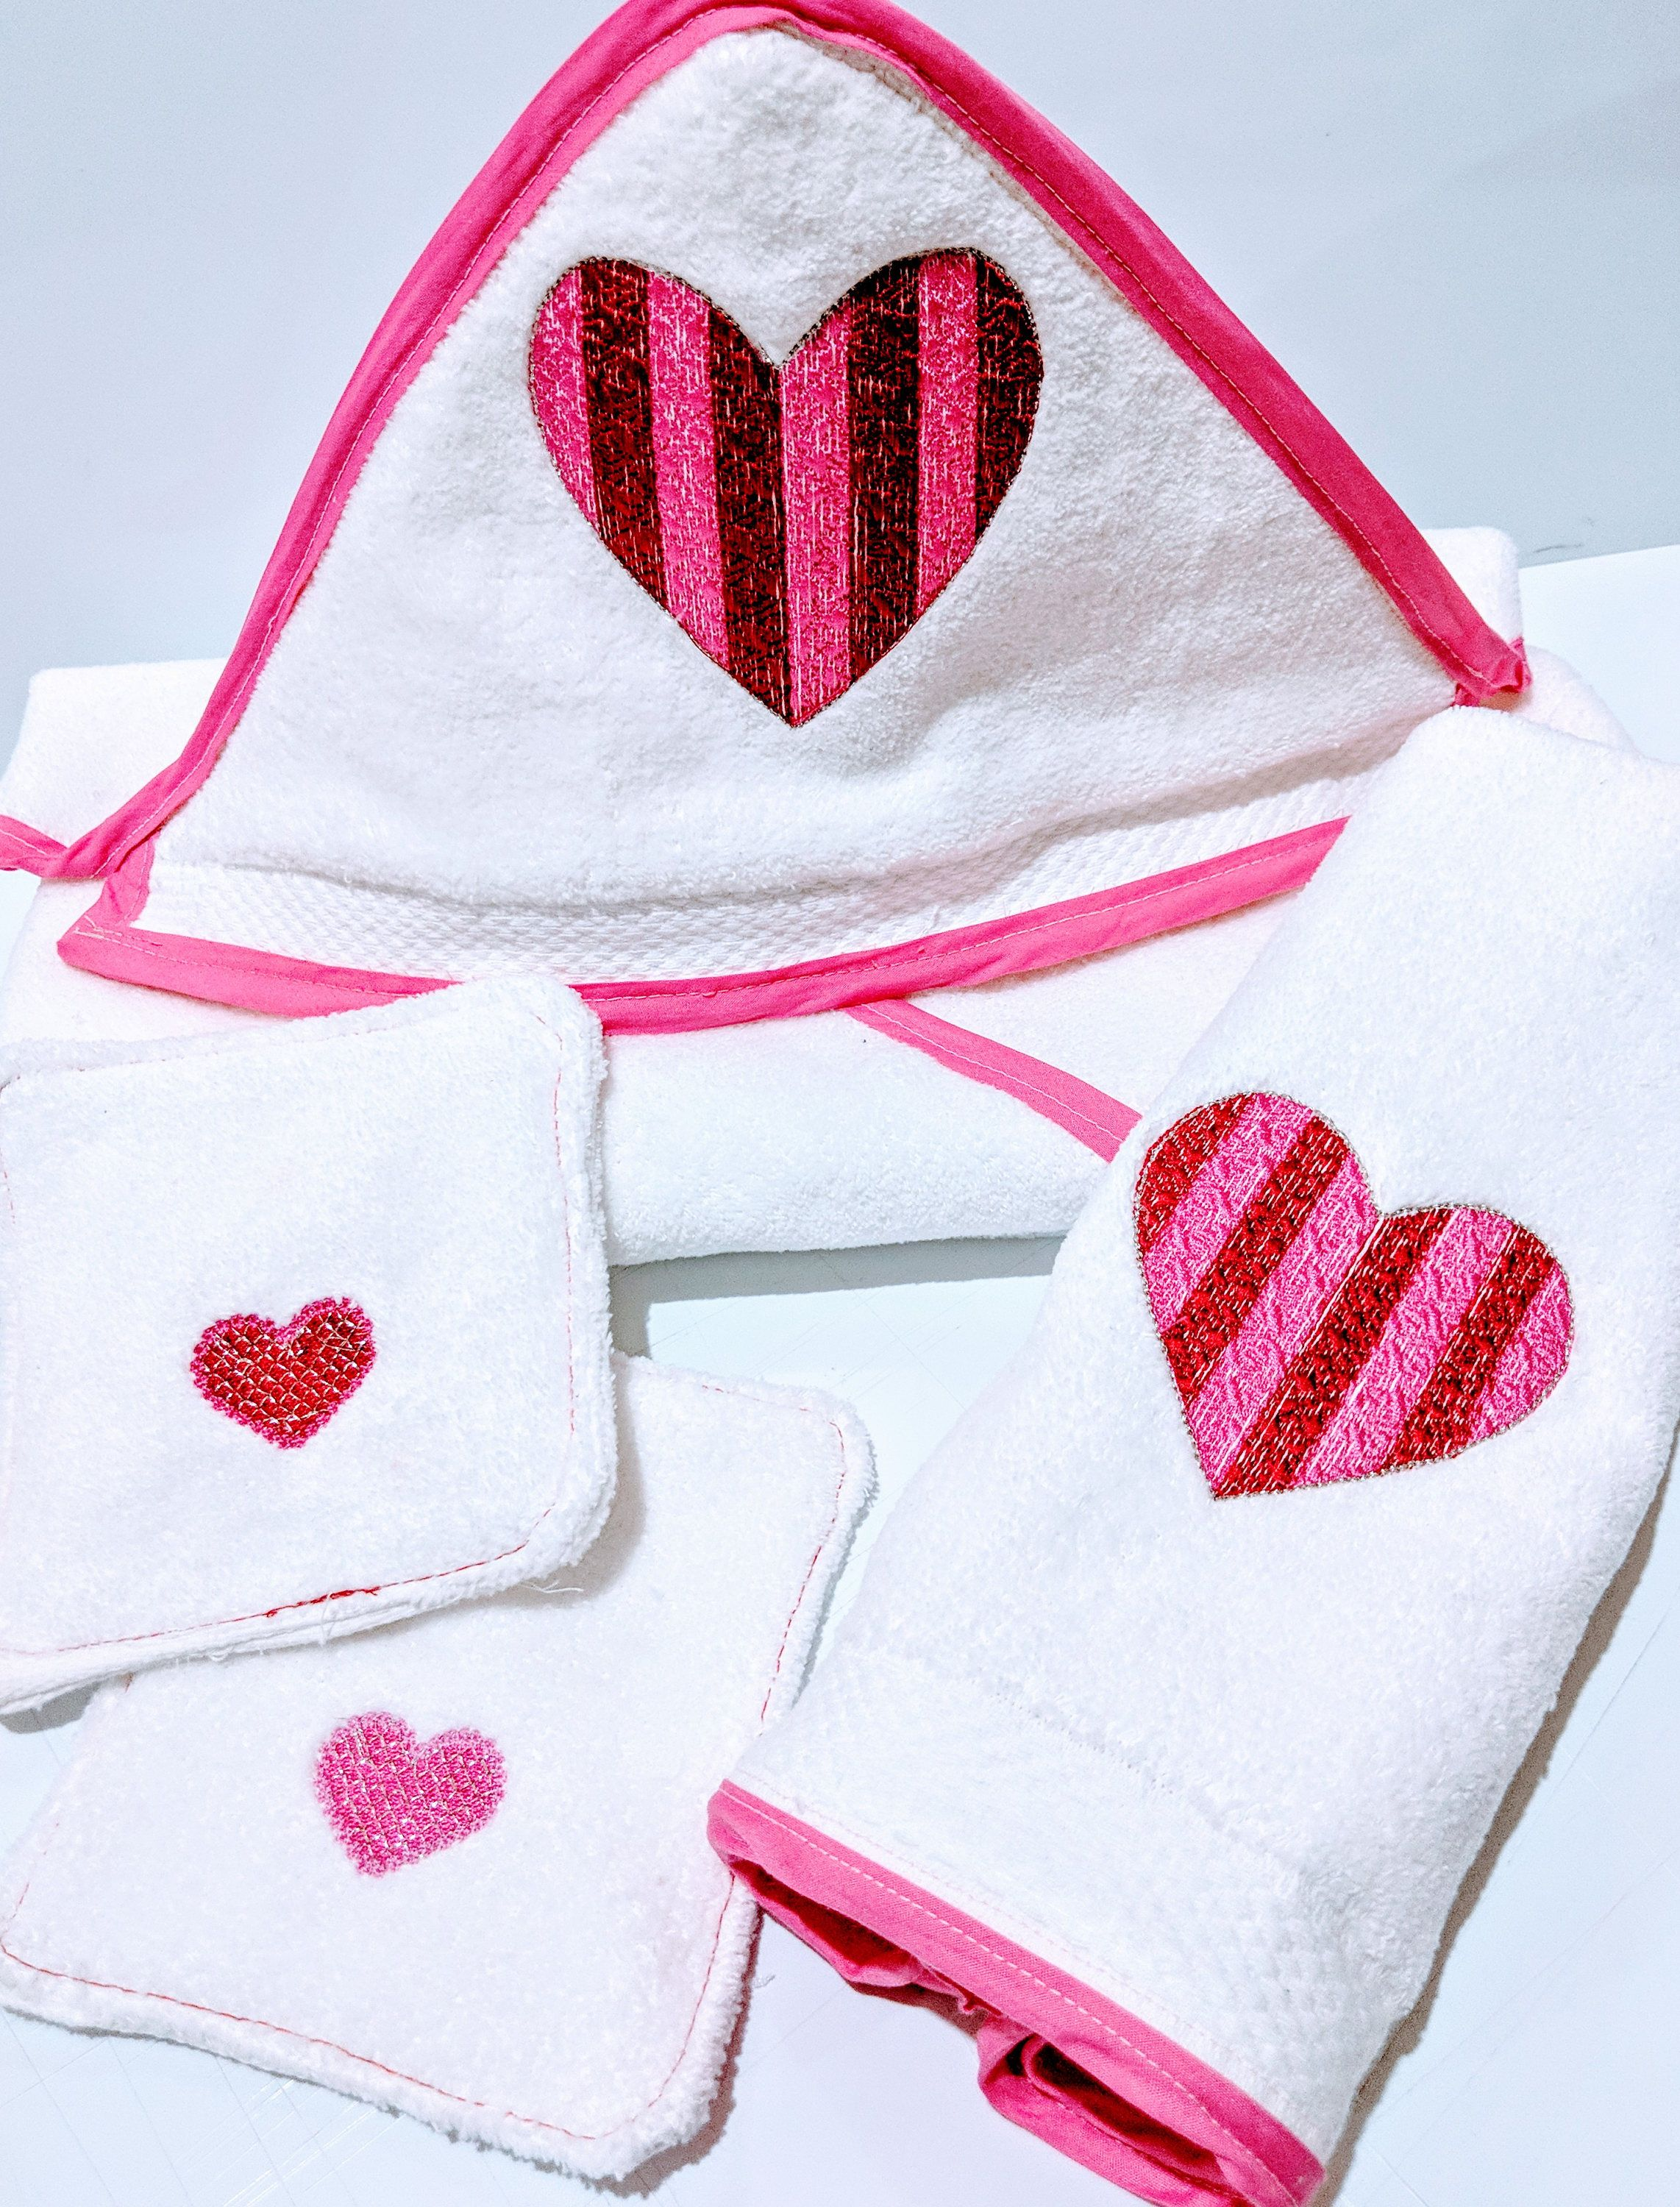 Handmade Embroidered Hooded Baby Towel Gift Set Baby Towels